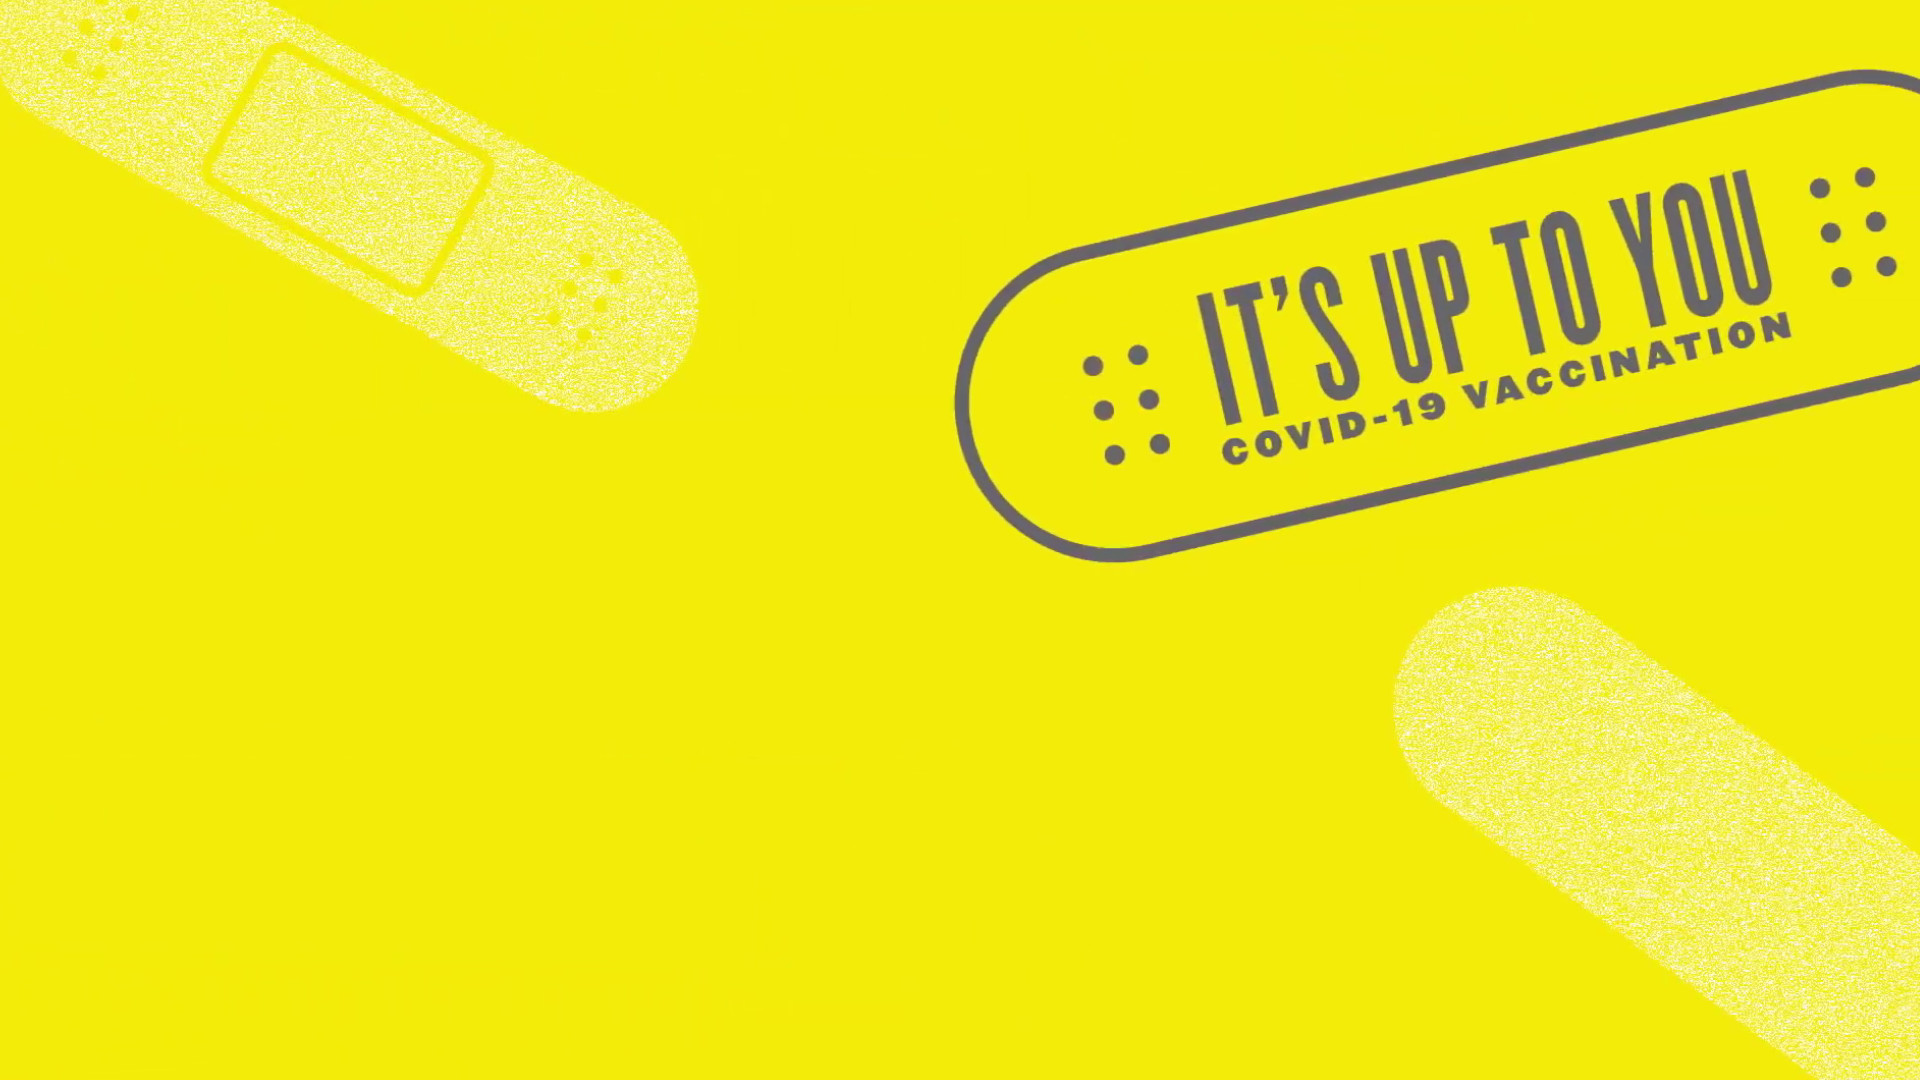 Its Up to You. COVID-19 Vaccine Education by Ad Council